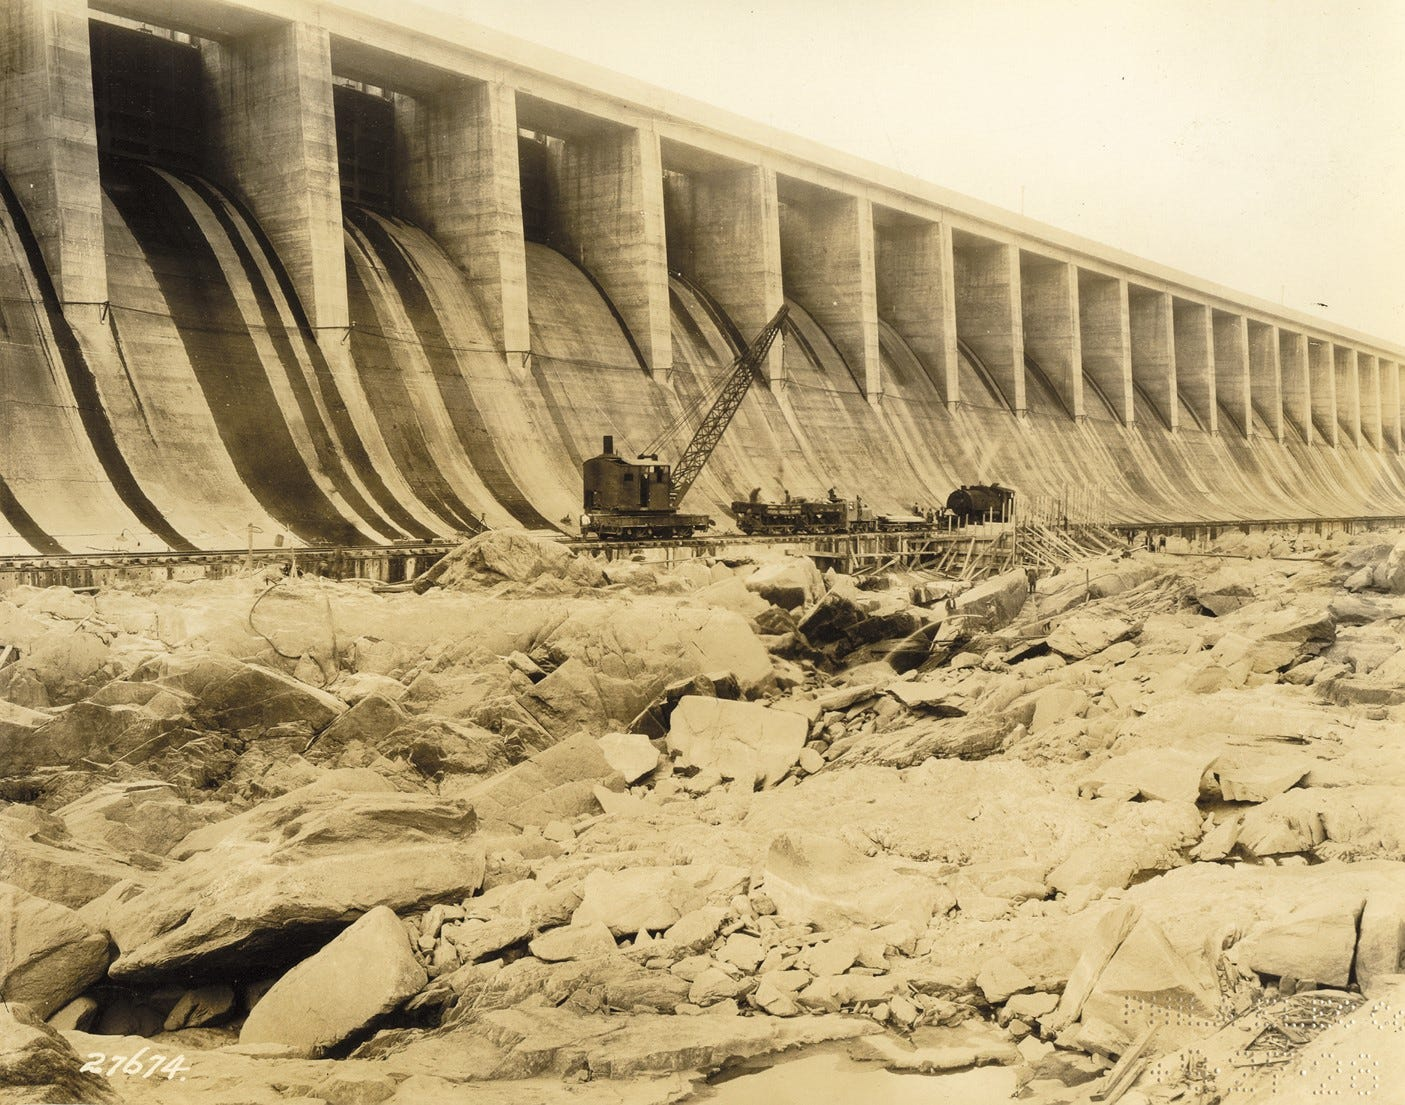 In this photo taken Sept. 27, 1928, the Conowingo Dam is shown under construction. The dam was erected between 1926-1929 upon a rock formation of granite and diorite.